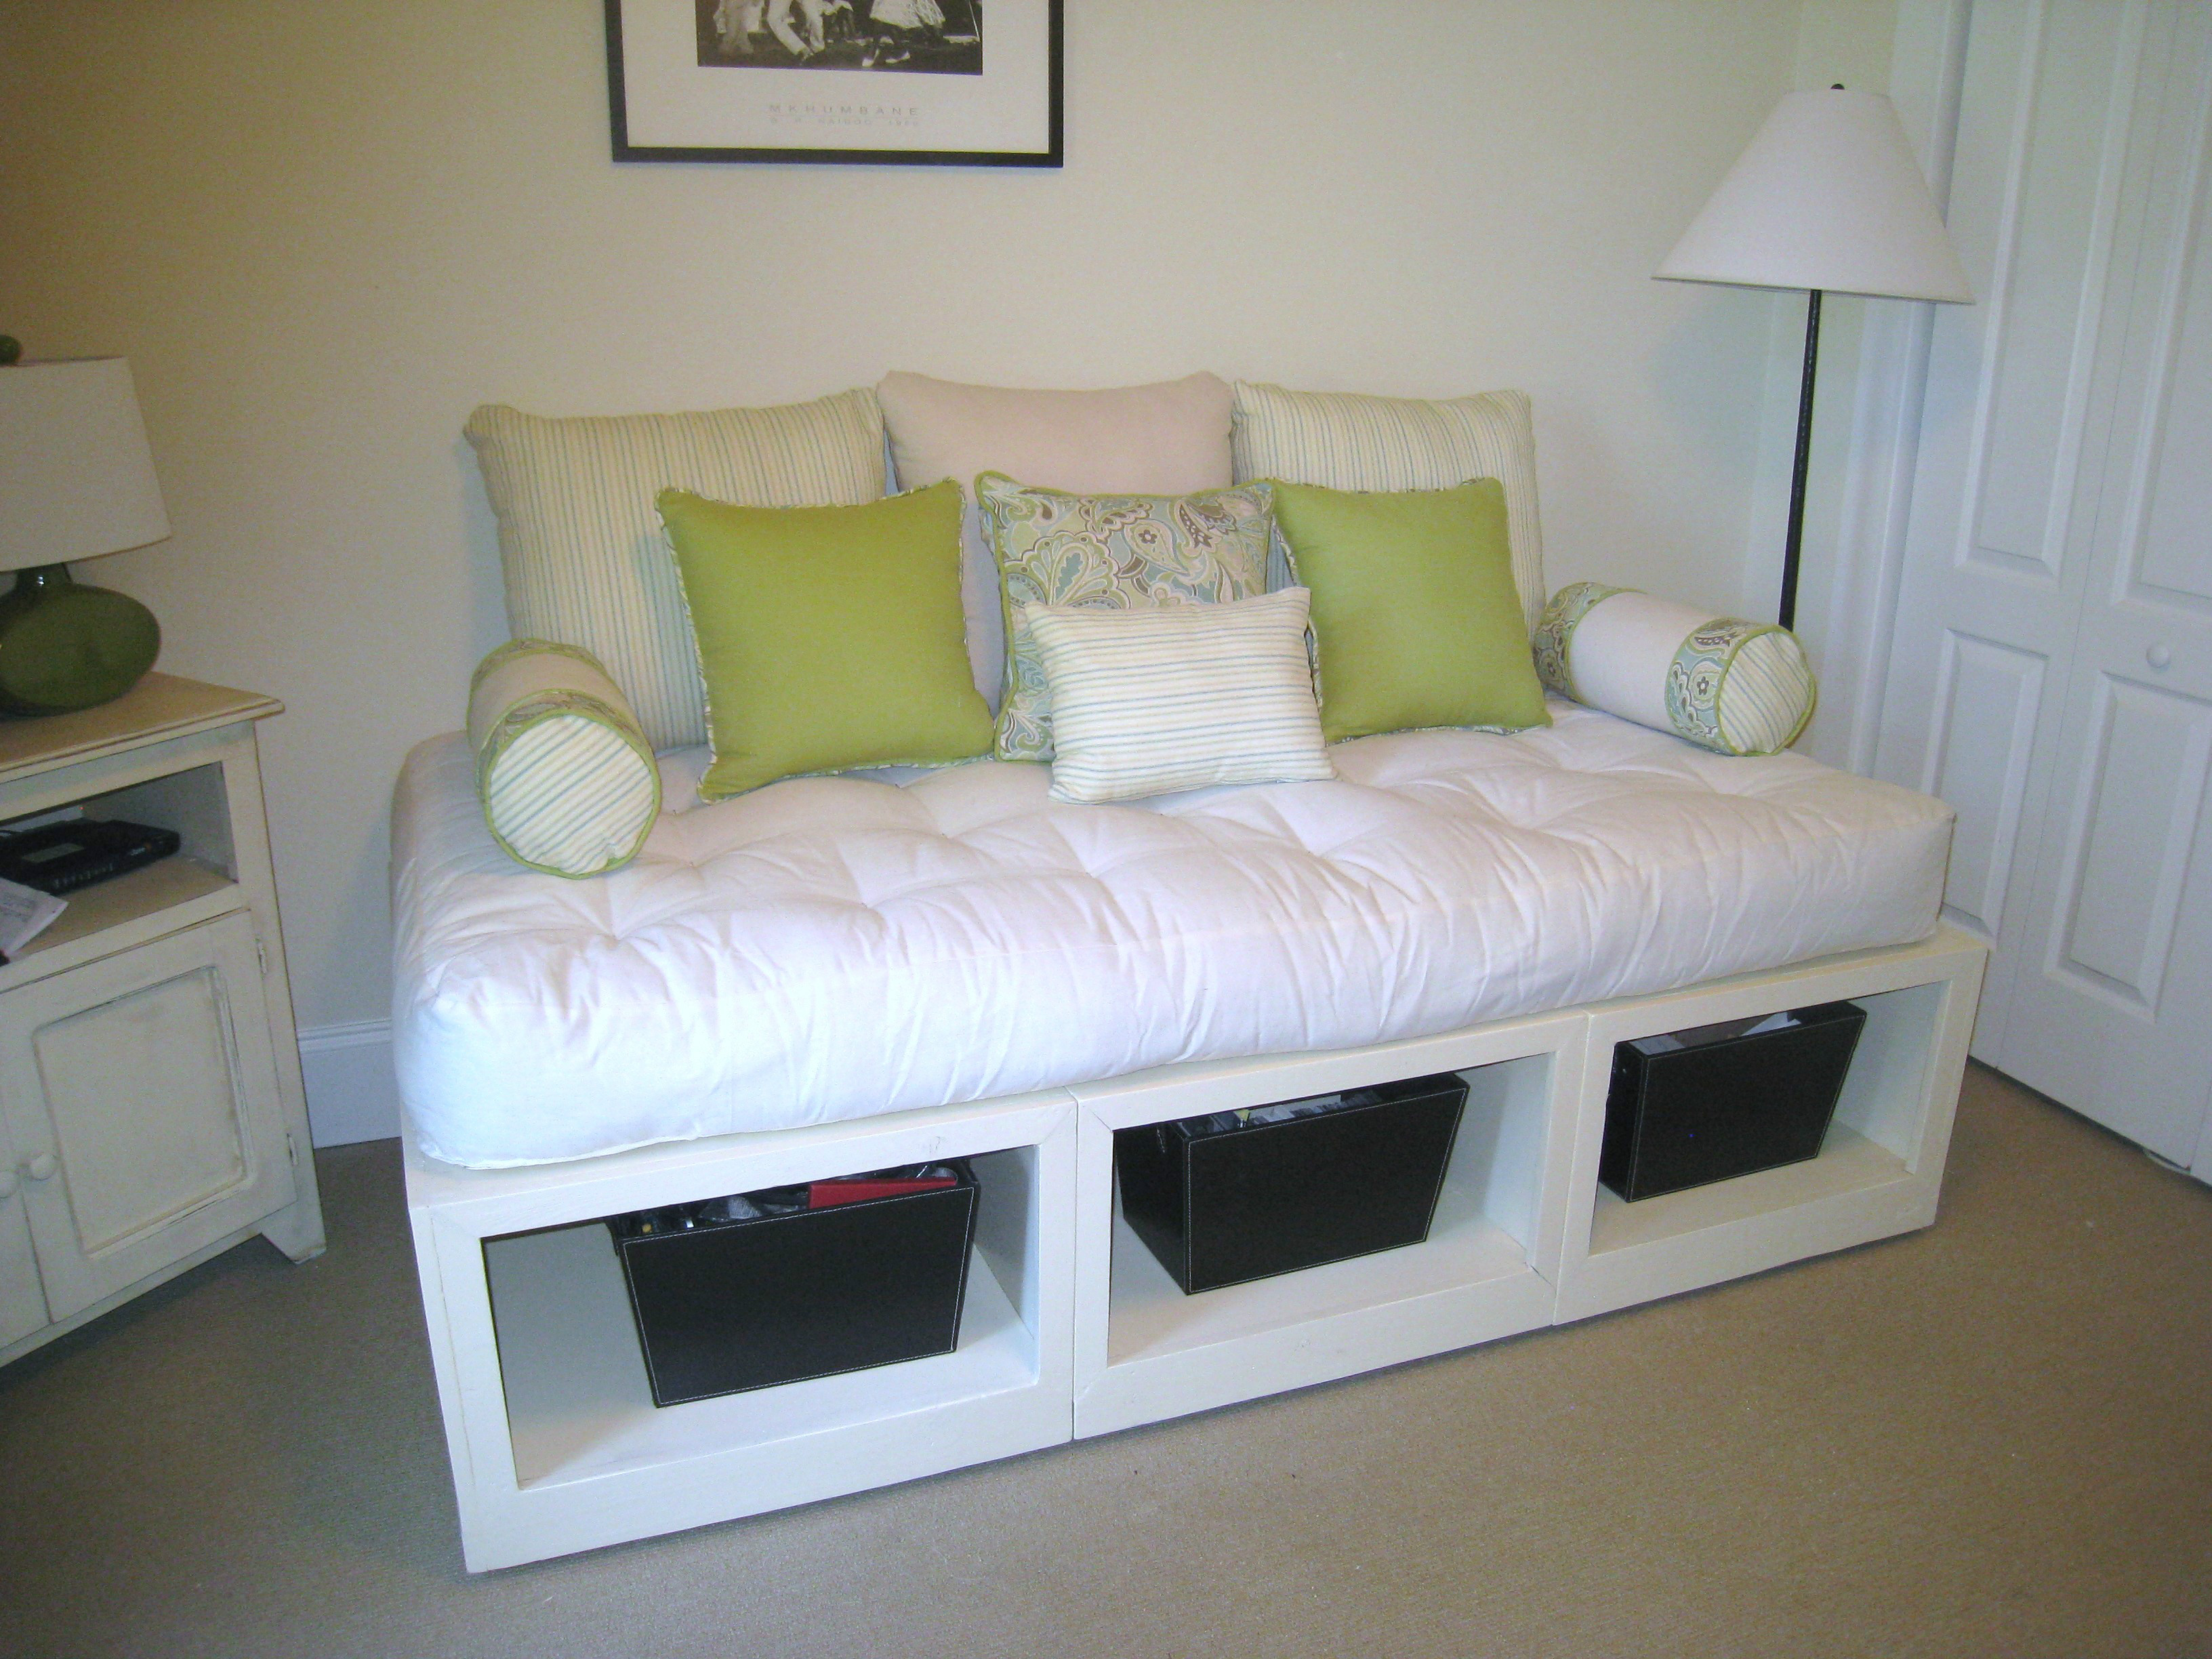 Ana white storage day bed diy projects for Home design diy